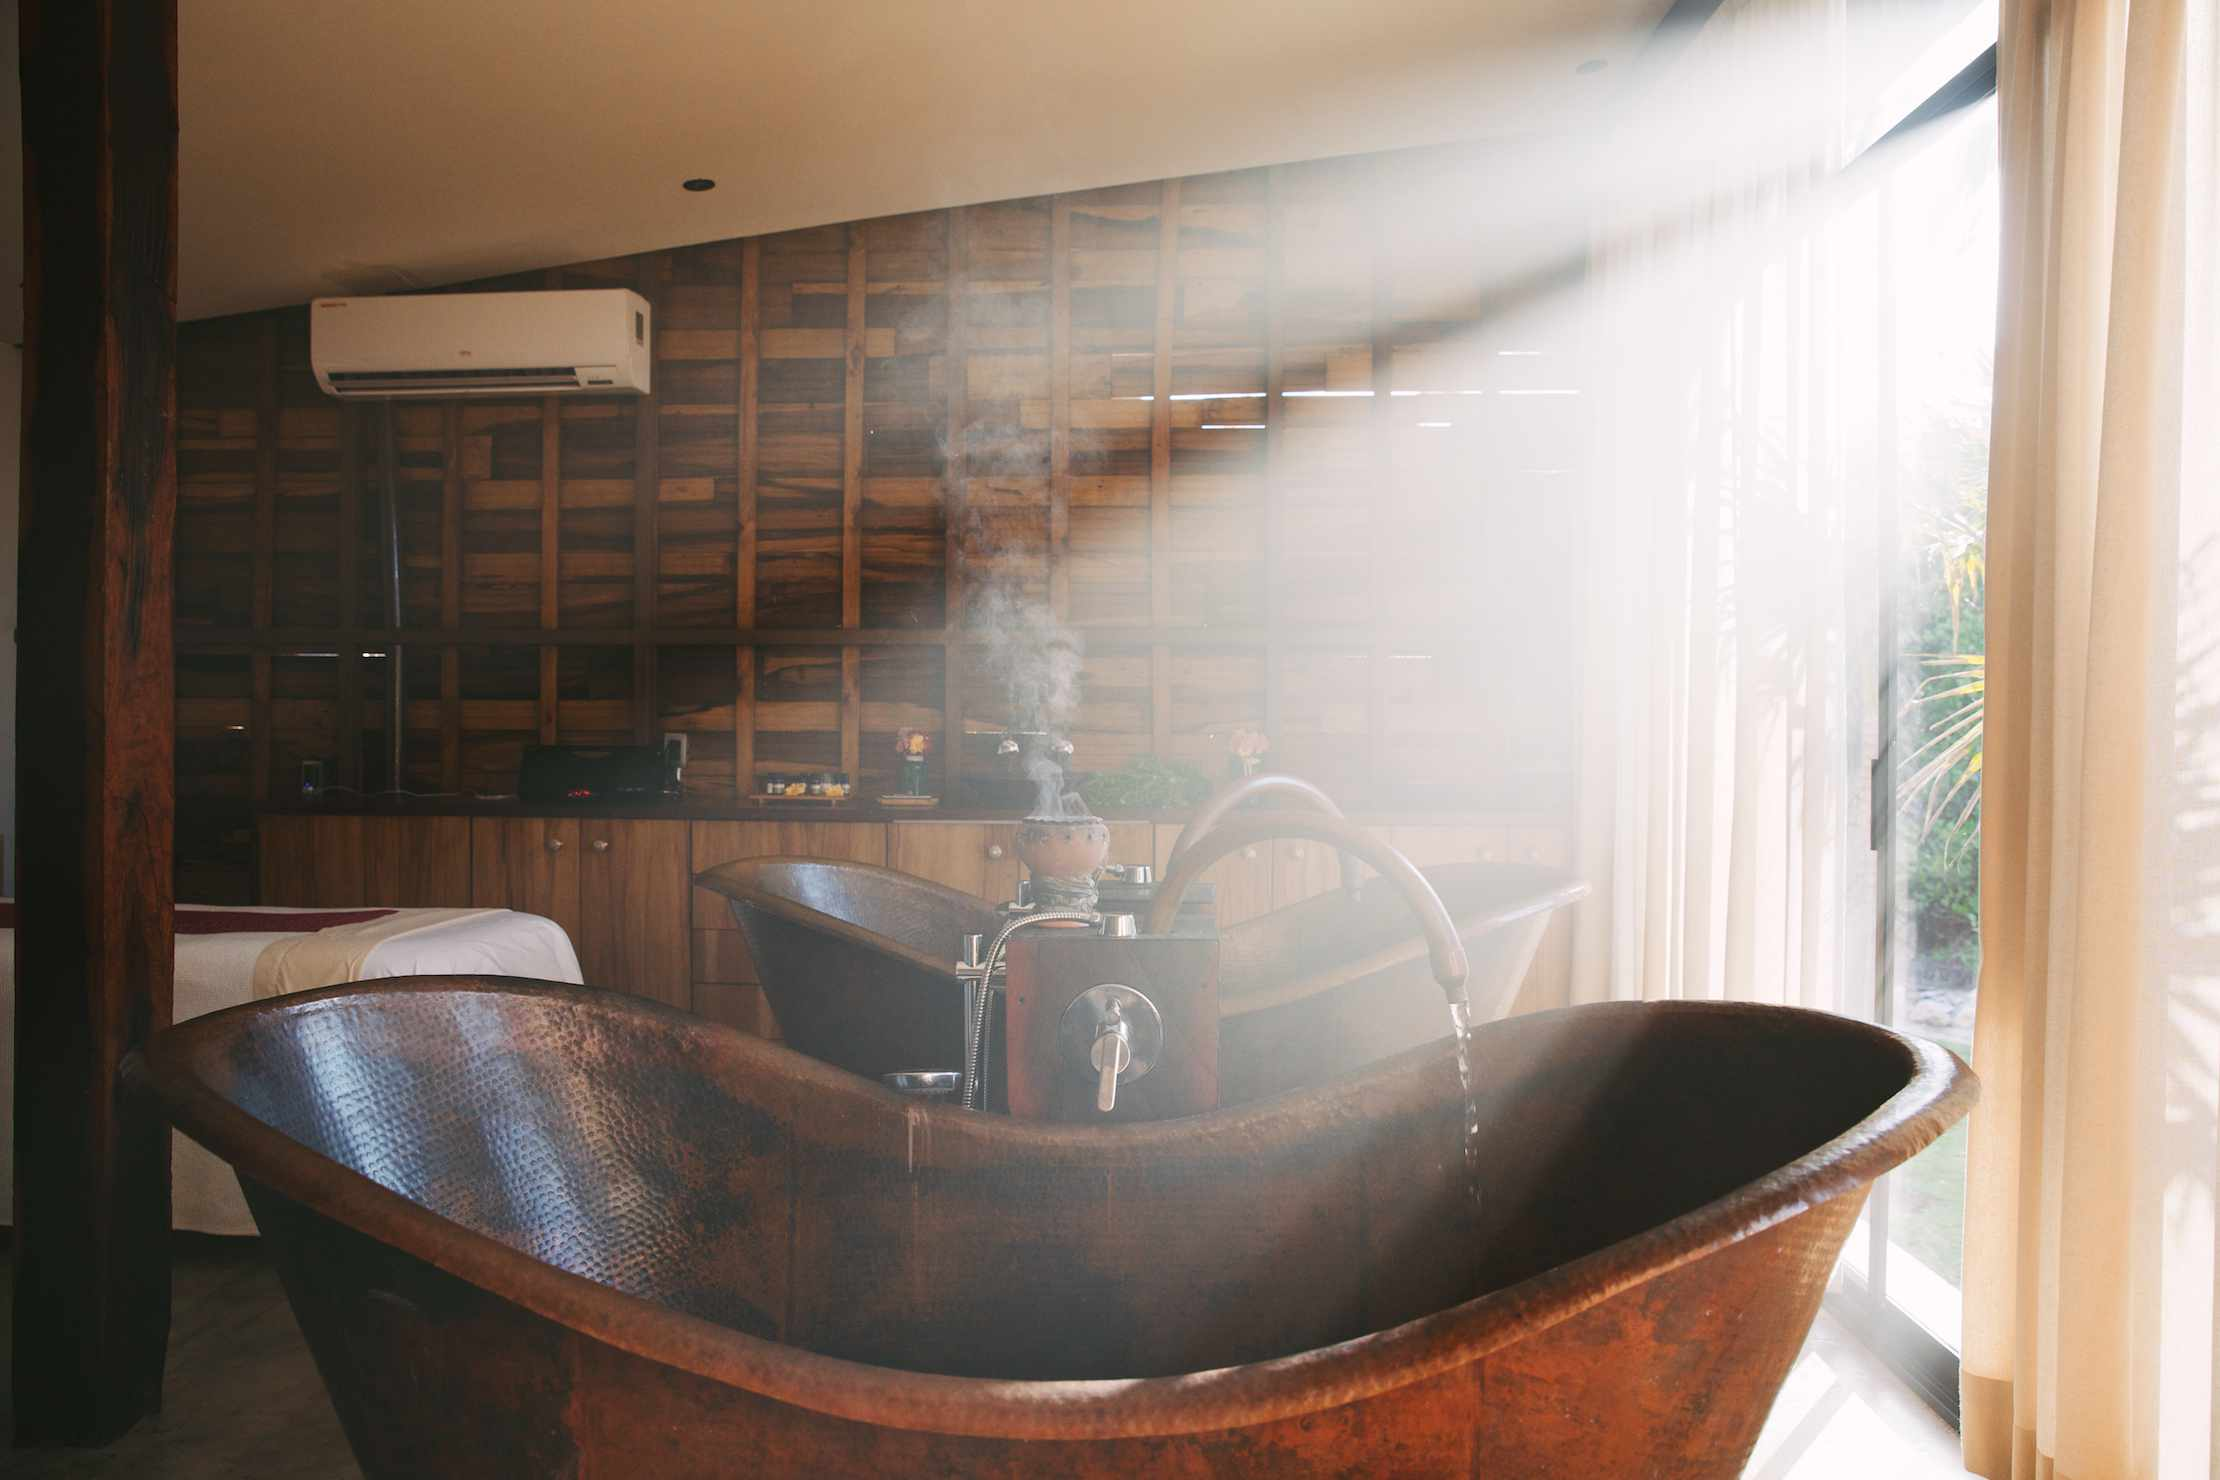 Large bathtubs with water and steam